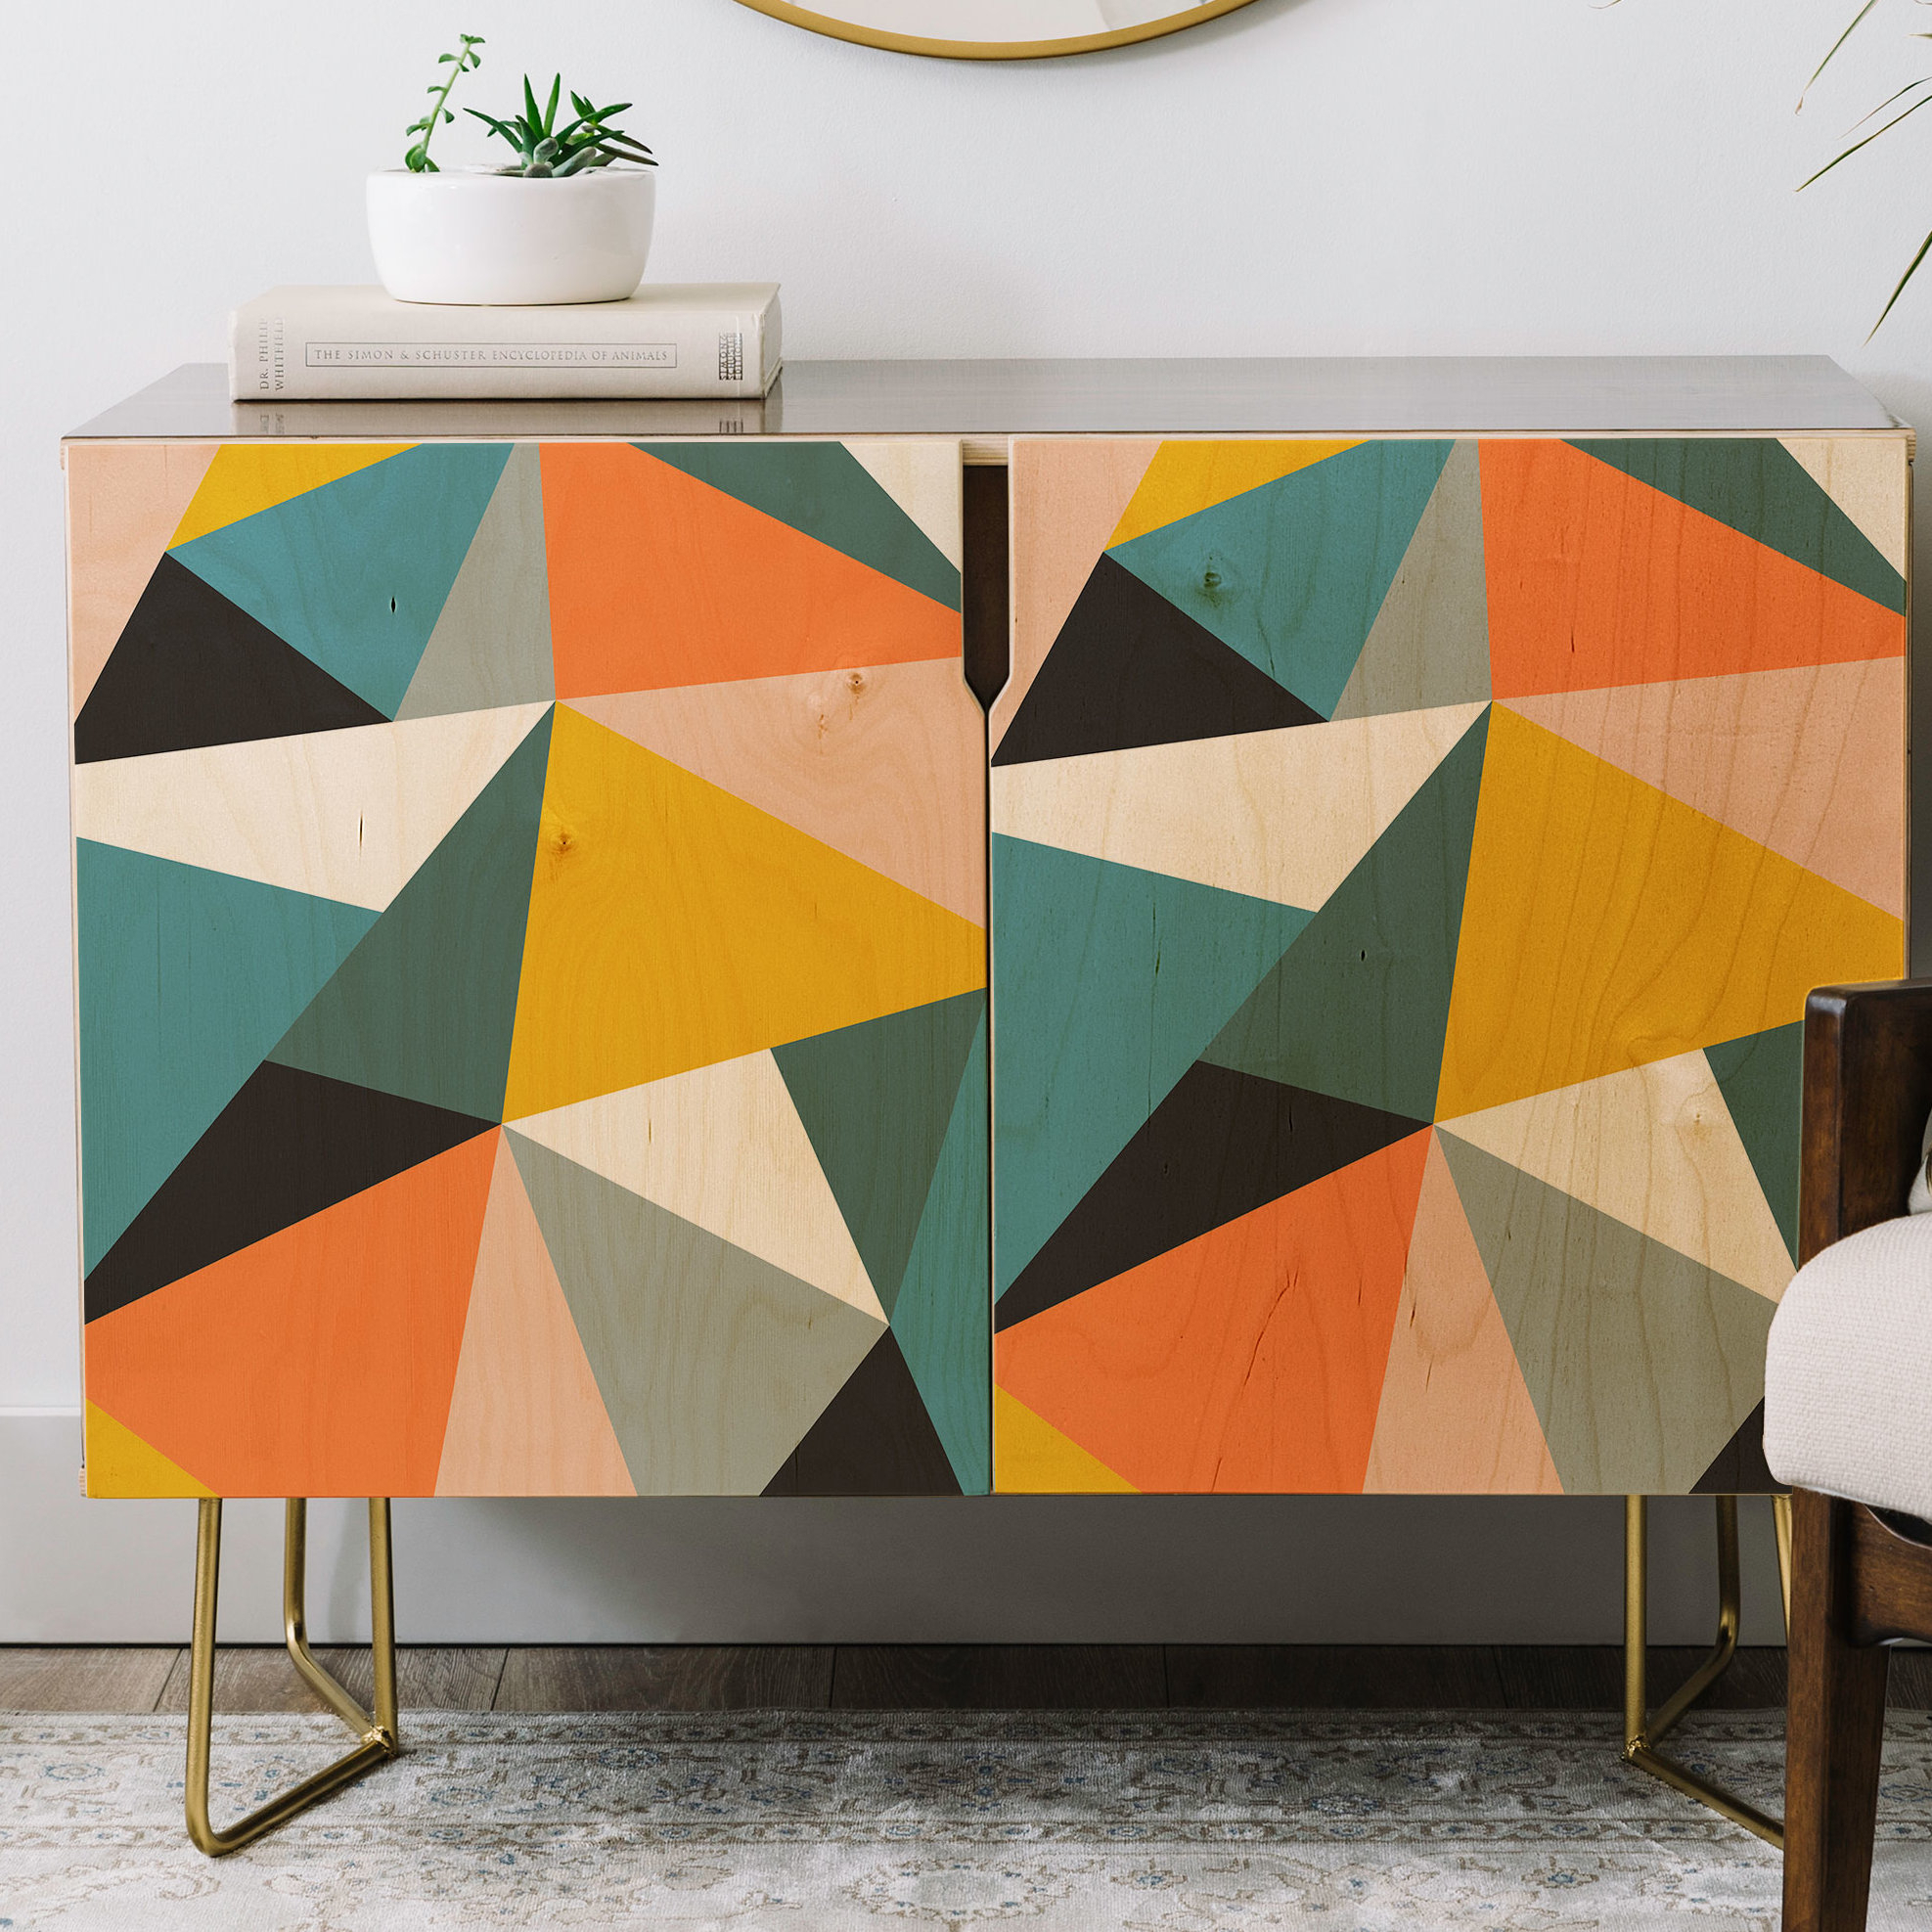 The Old Art Studio Modern Geometric Credenza throughout Multi Colored Geometric Shapes Credenzas (Image 30 of 30)